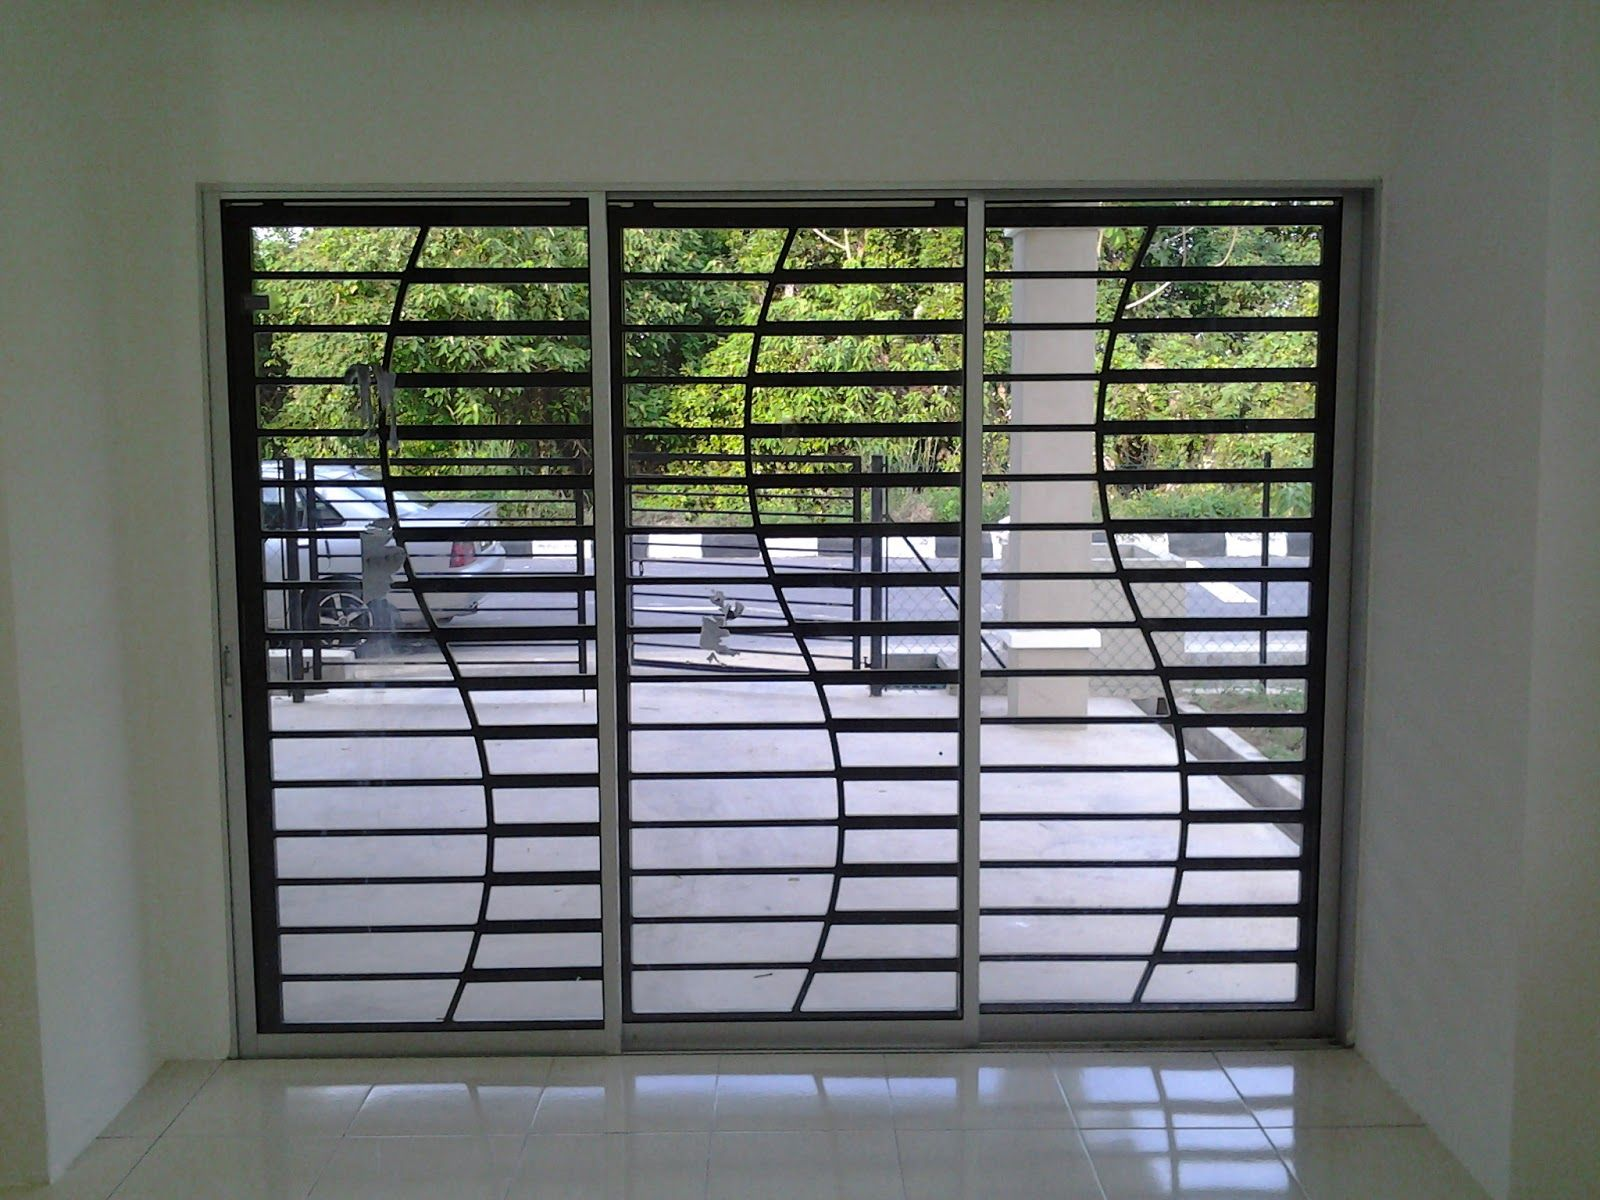 Curvy window grill fence home stairs gates Main entrance door grill